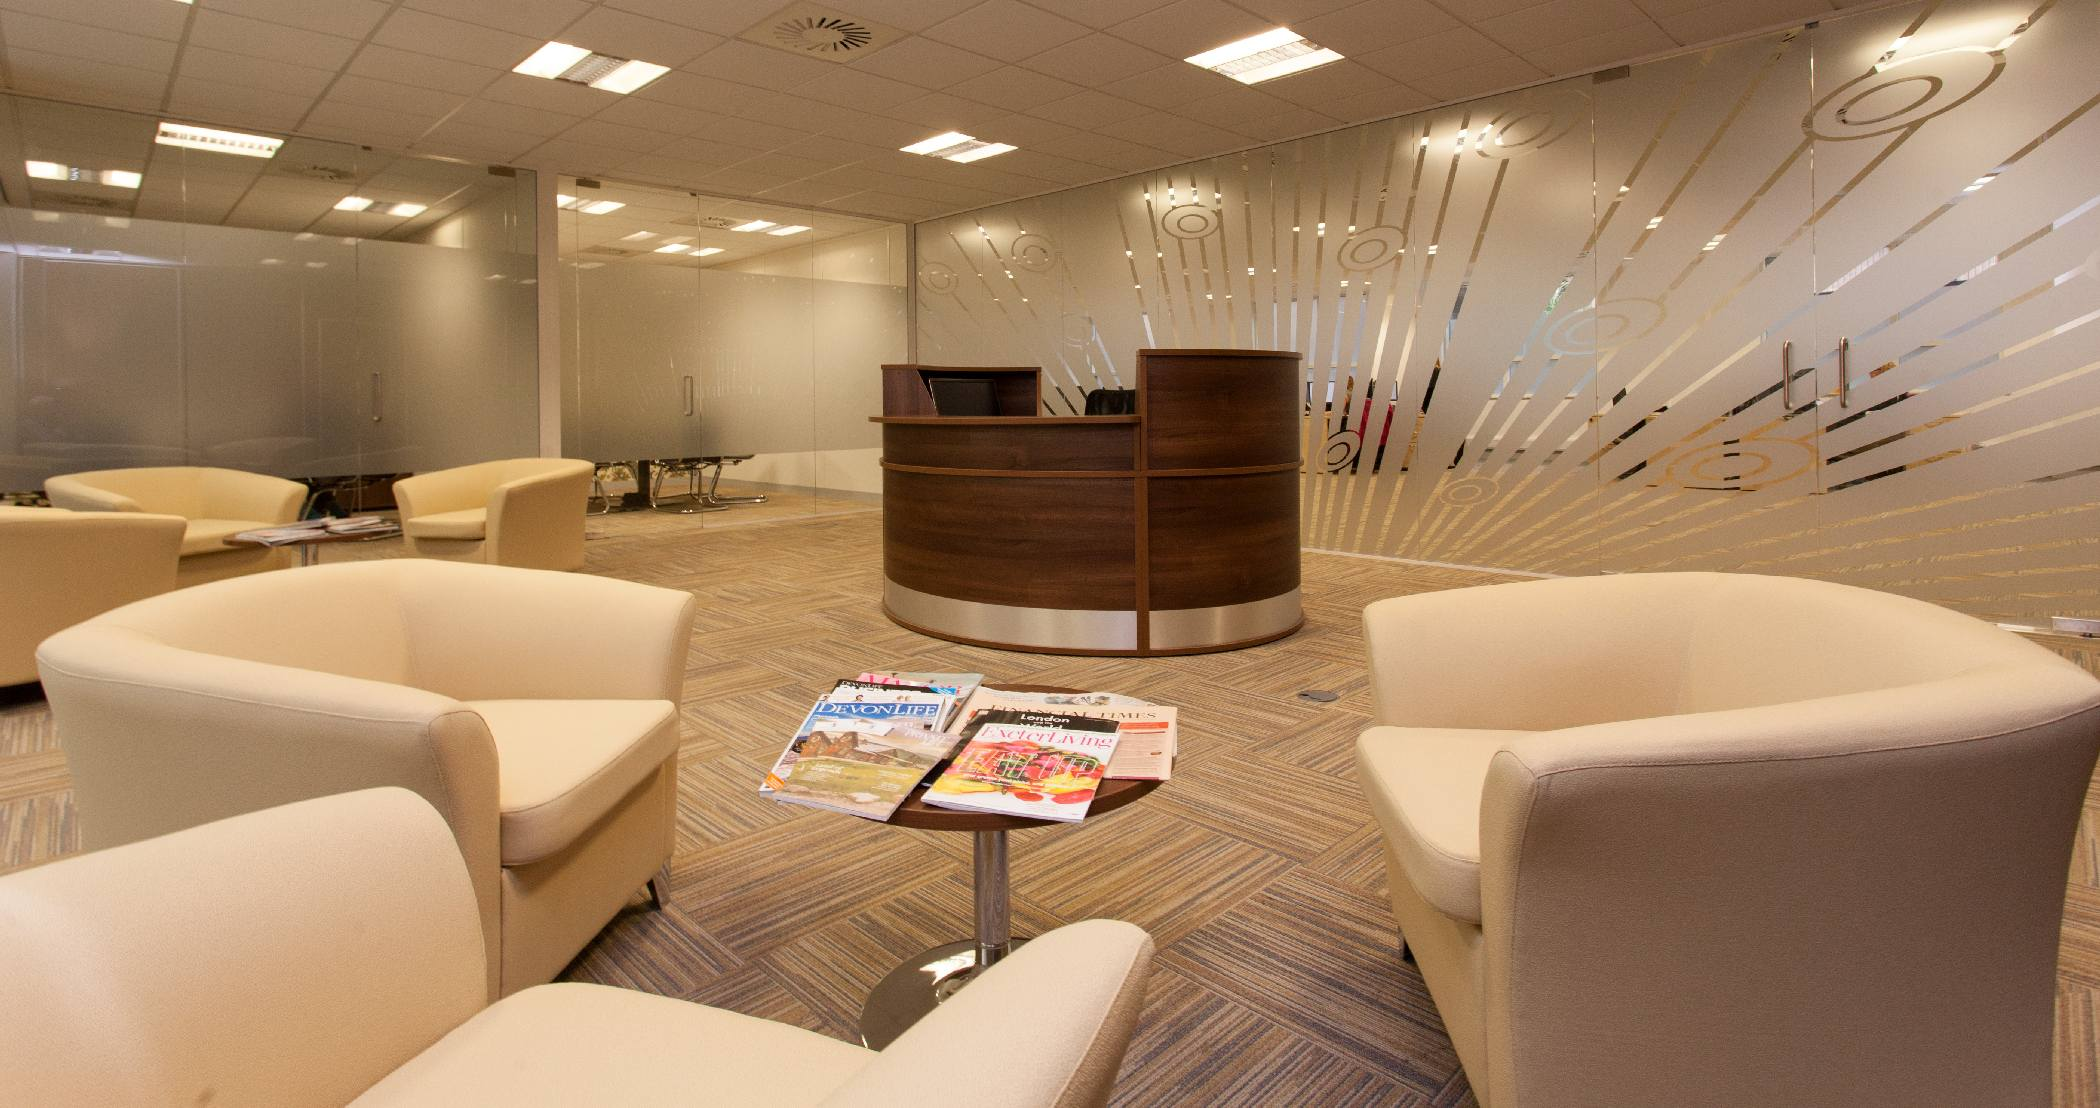 exeter office space. Private Bankers Arbuthnot Latham Undergo Massive Refit Of Exeter Office Space